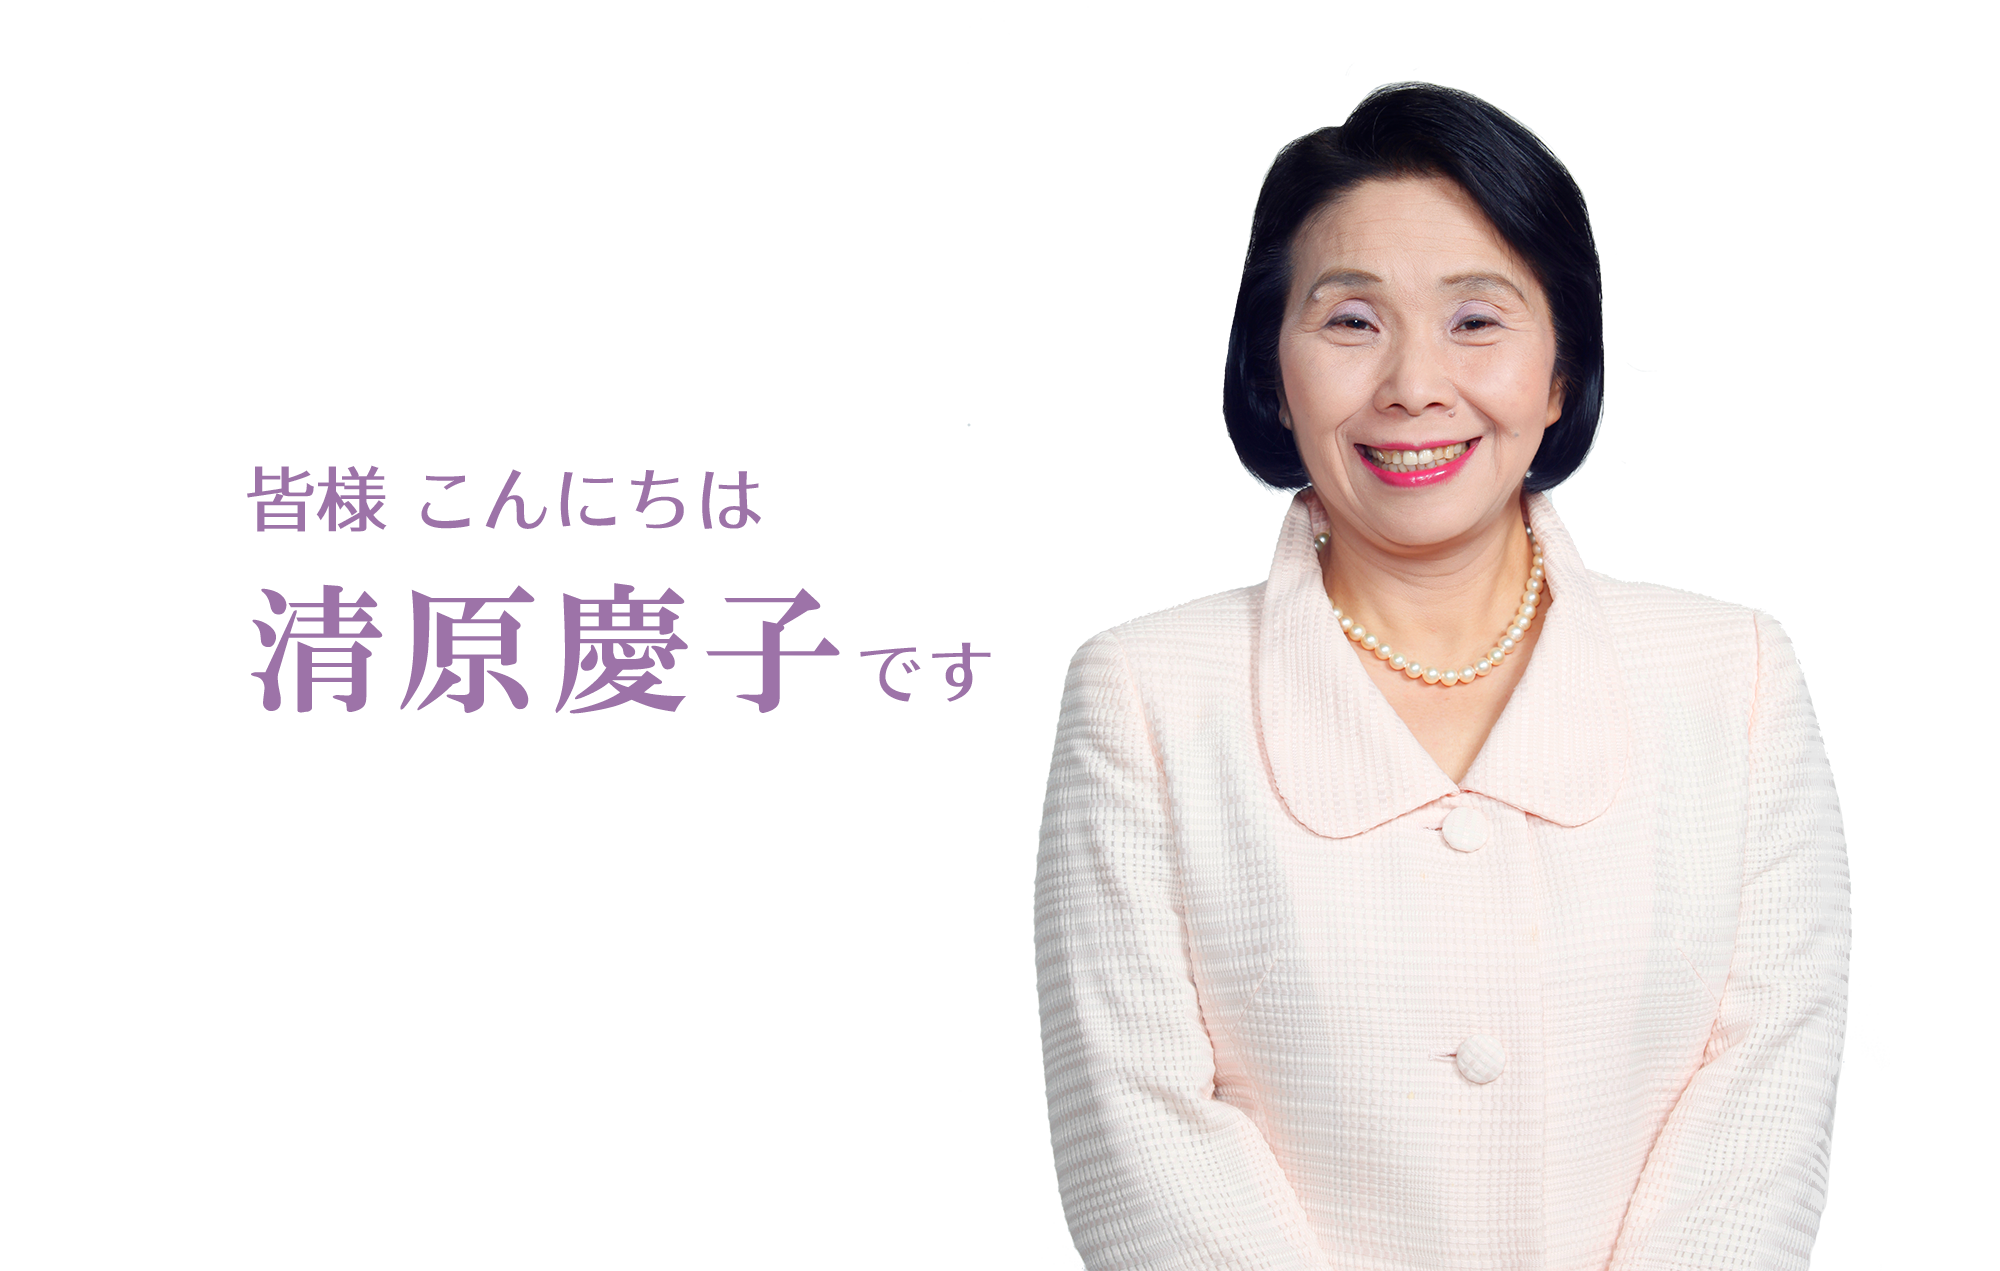 清原慶子 Official Website